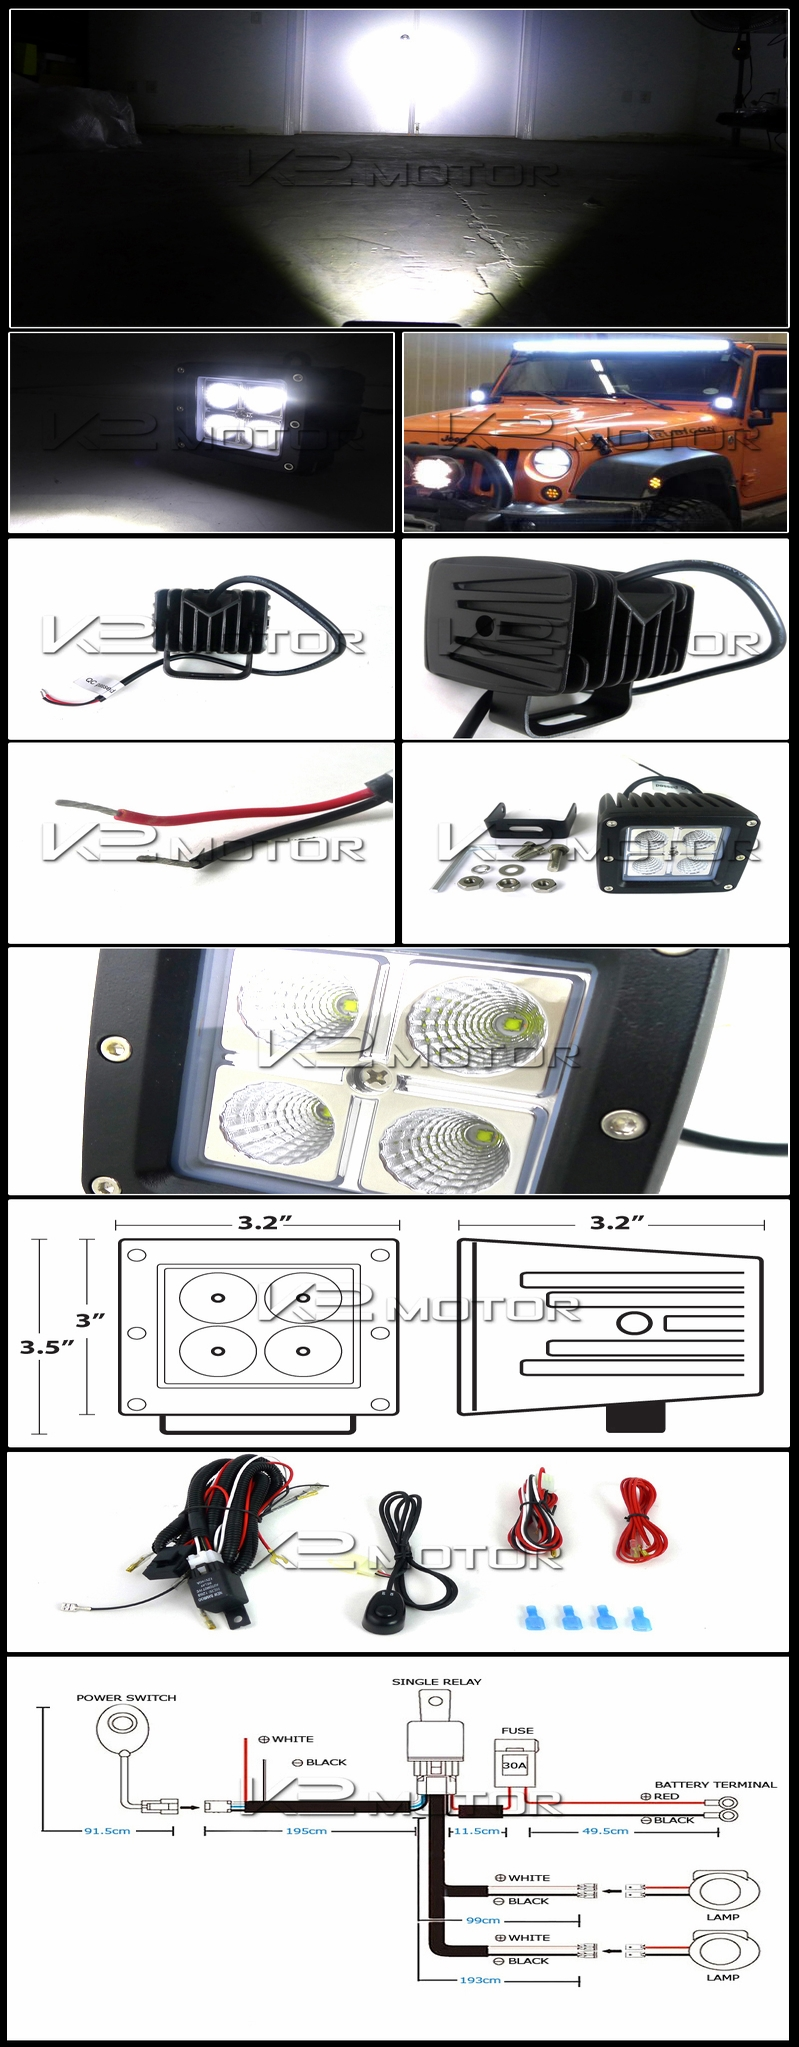 hight resolution of wiring harnes for 4 off road light